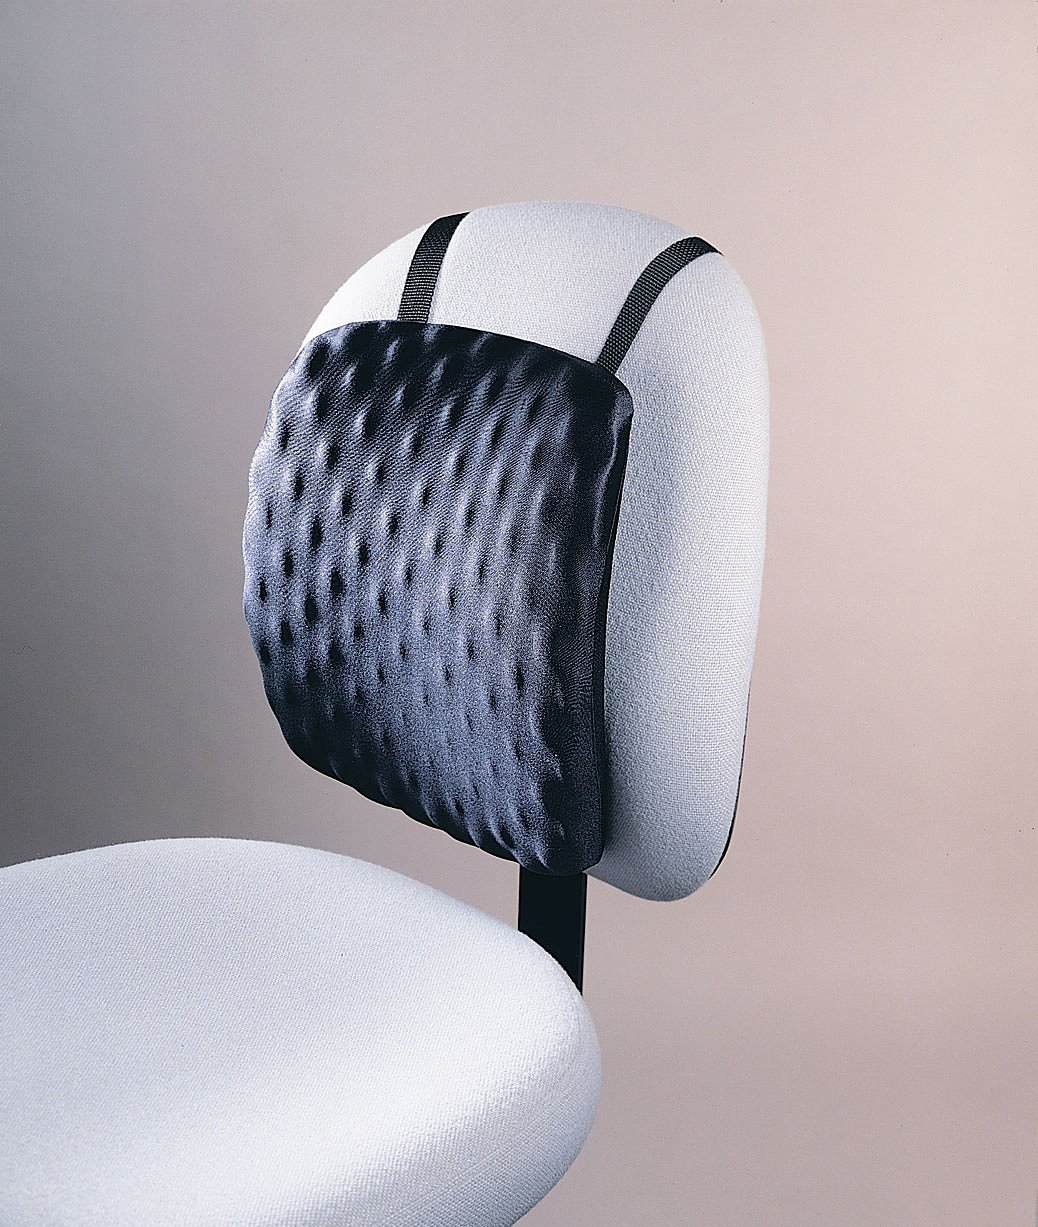 Kensington HalfBack Pad,  Chair Pad for Spine Comfort and Support, in Black (L82021B)